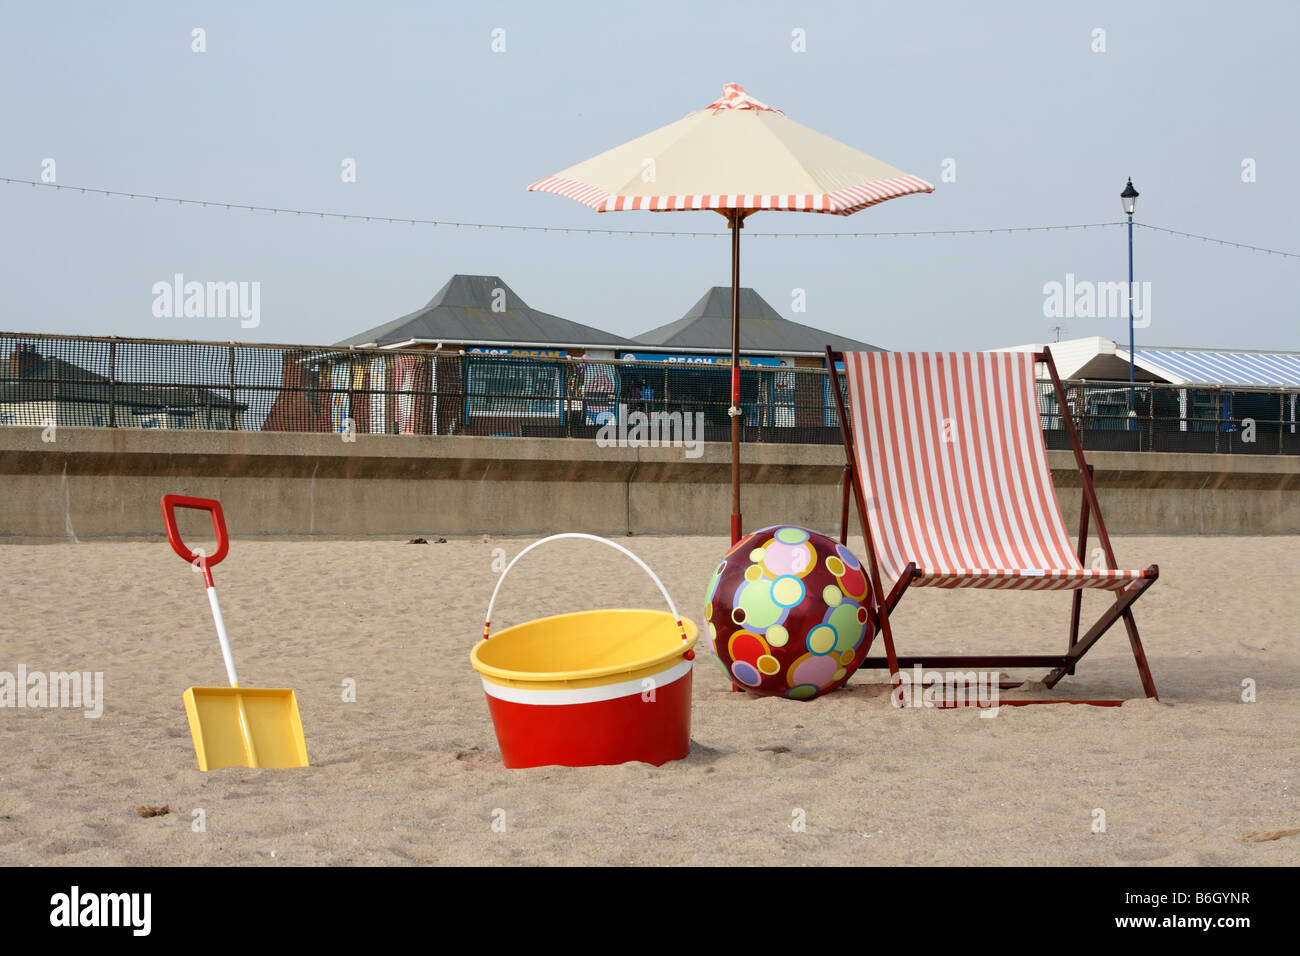 In Search of Albion, Sutton on Sea, Lincolnshire, England UK - Stock Image